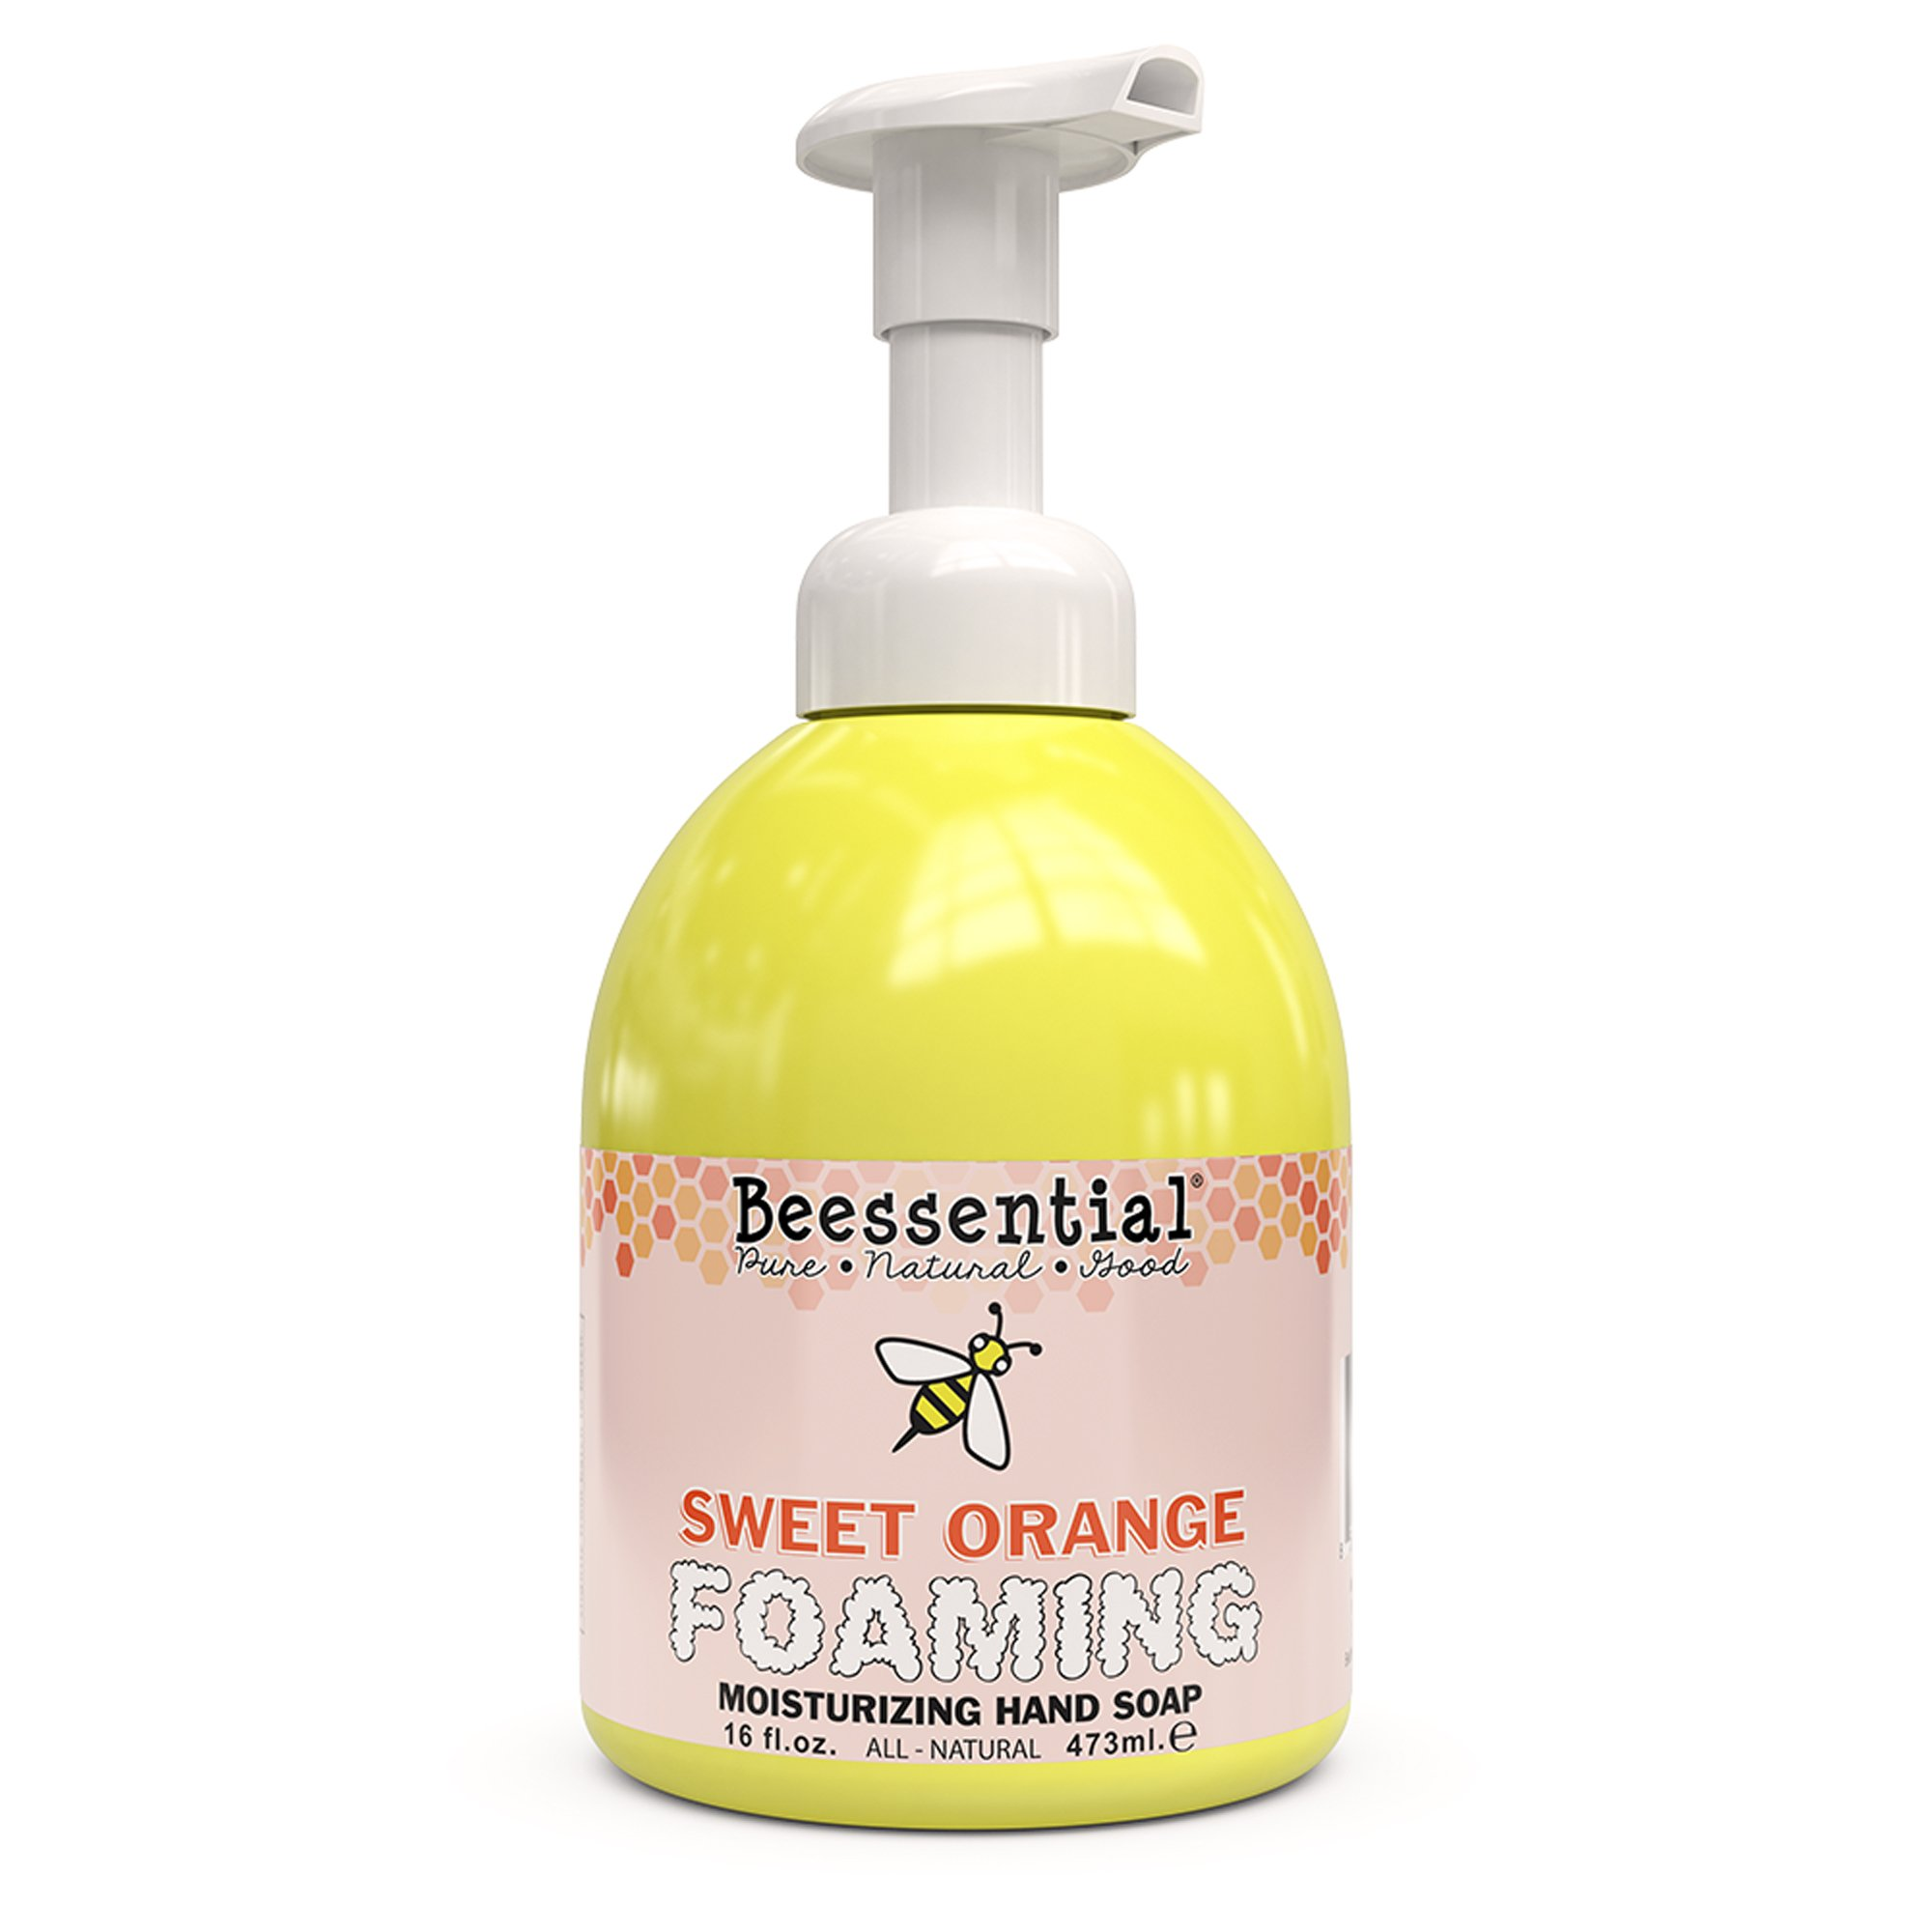 Beessential All Natural Foaming Hand Soap, Orange Essential Oils, Made with Moisturizing Aloe & Honey - Made in the USA, 16 oz